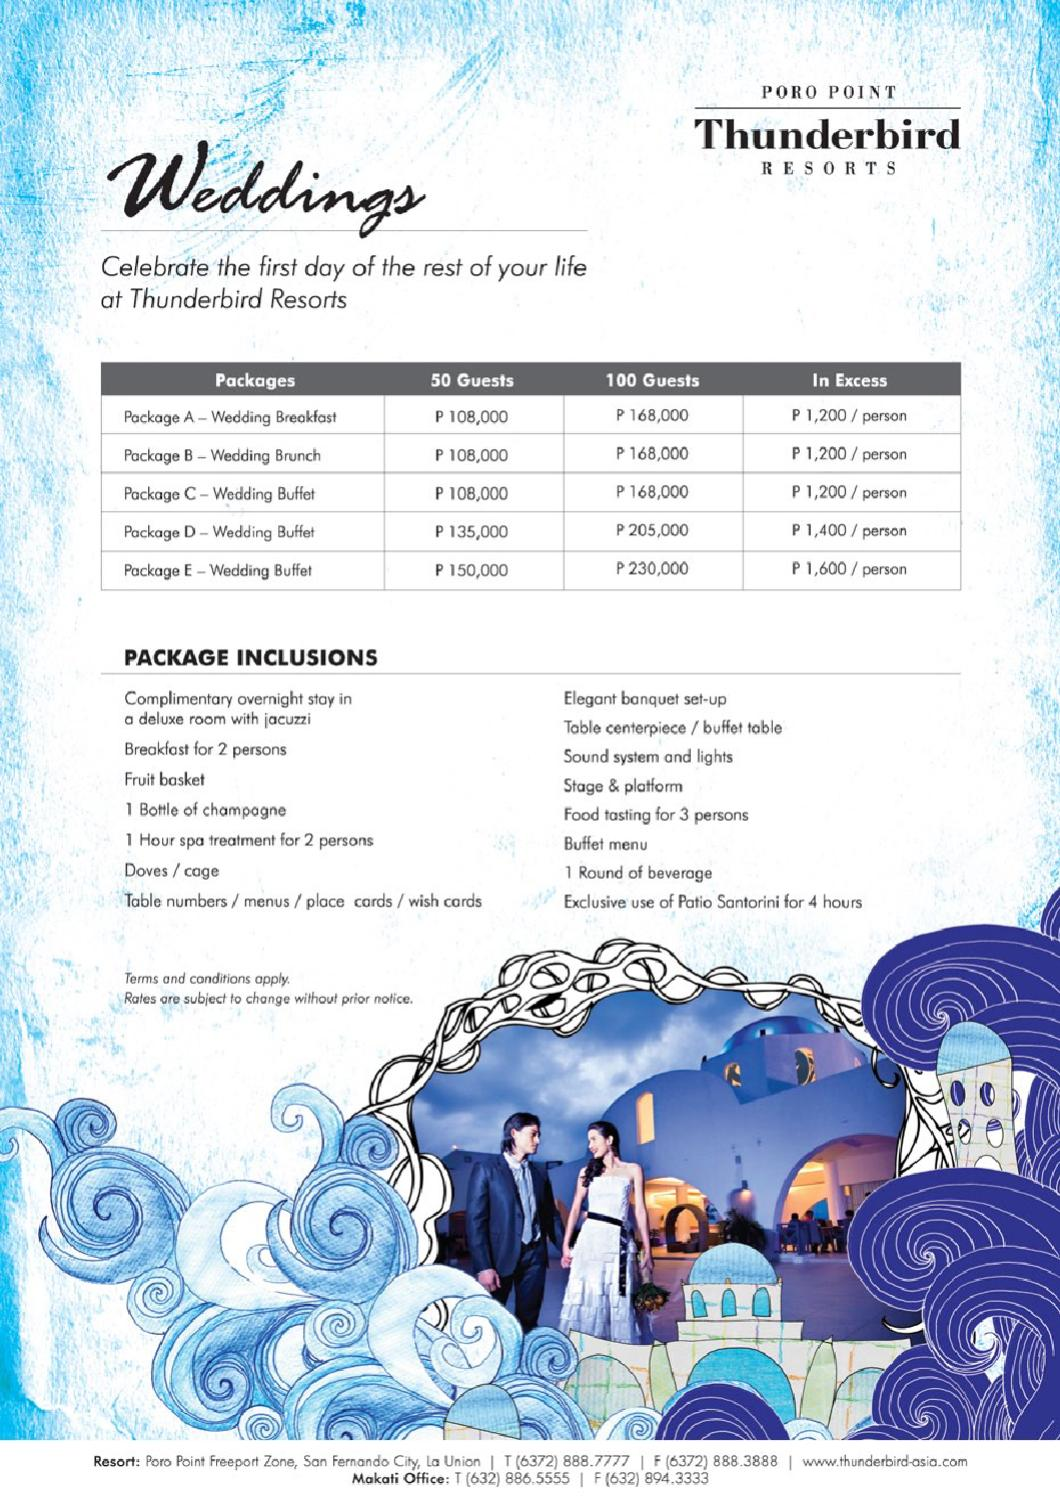 Thunderbird Resorts Poro Point Wedding Package By